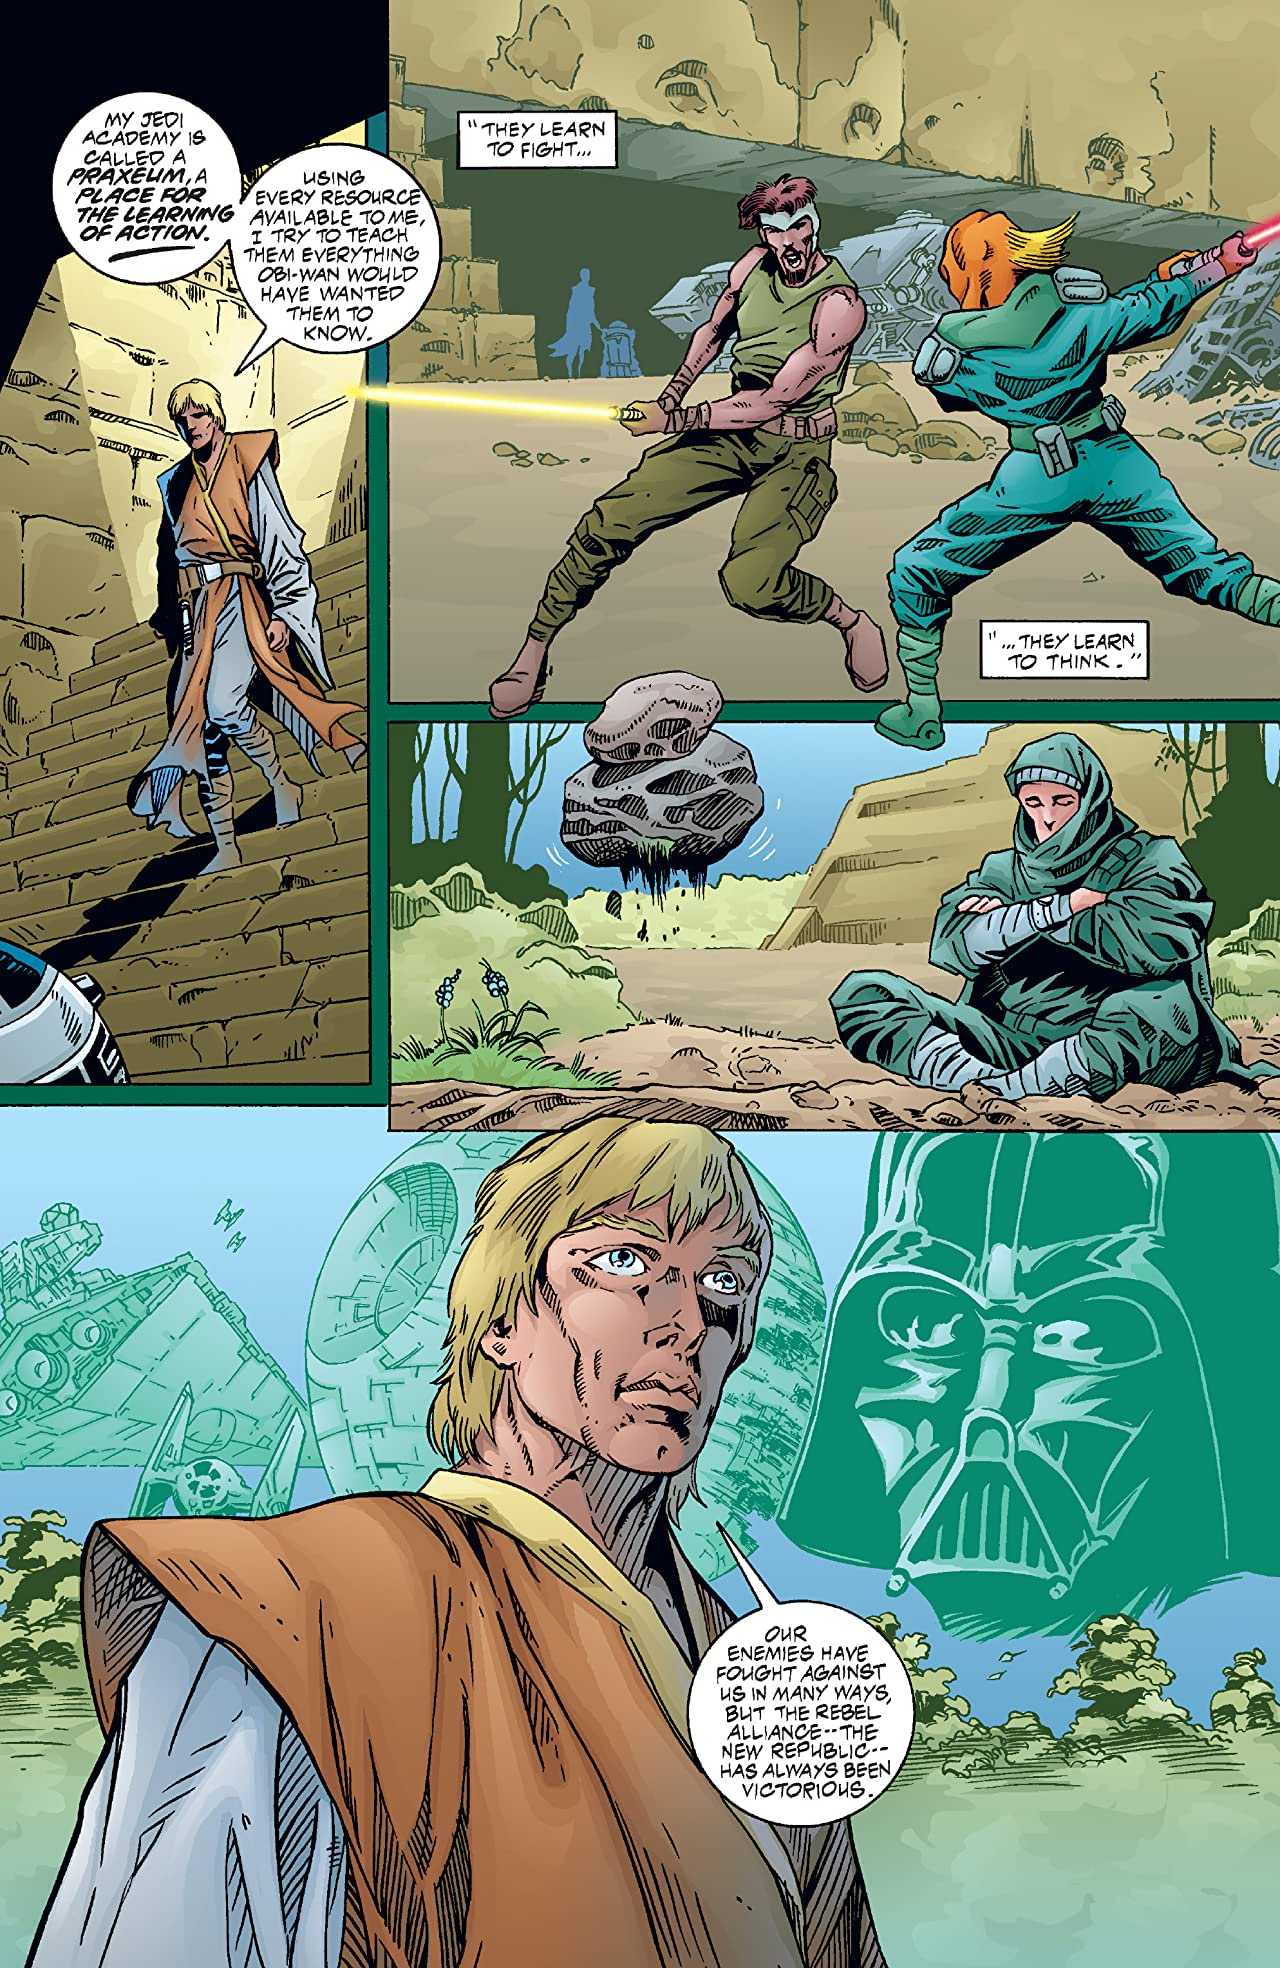 Star Wars: Jedi Academy - Leviathan (1998-1999) #1 (of 4)